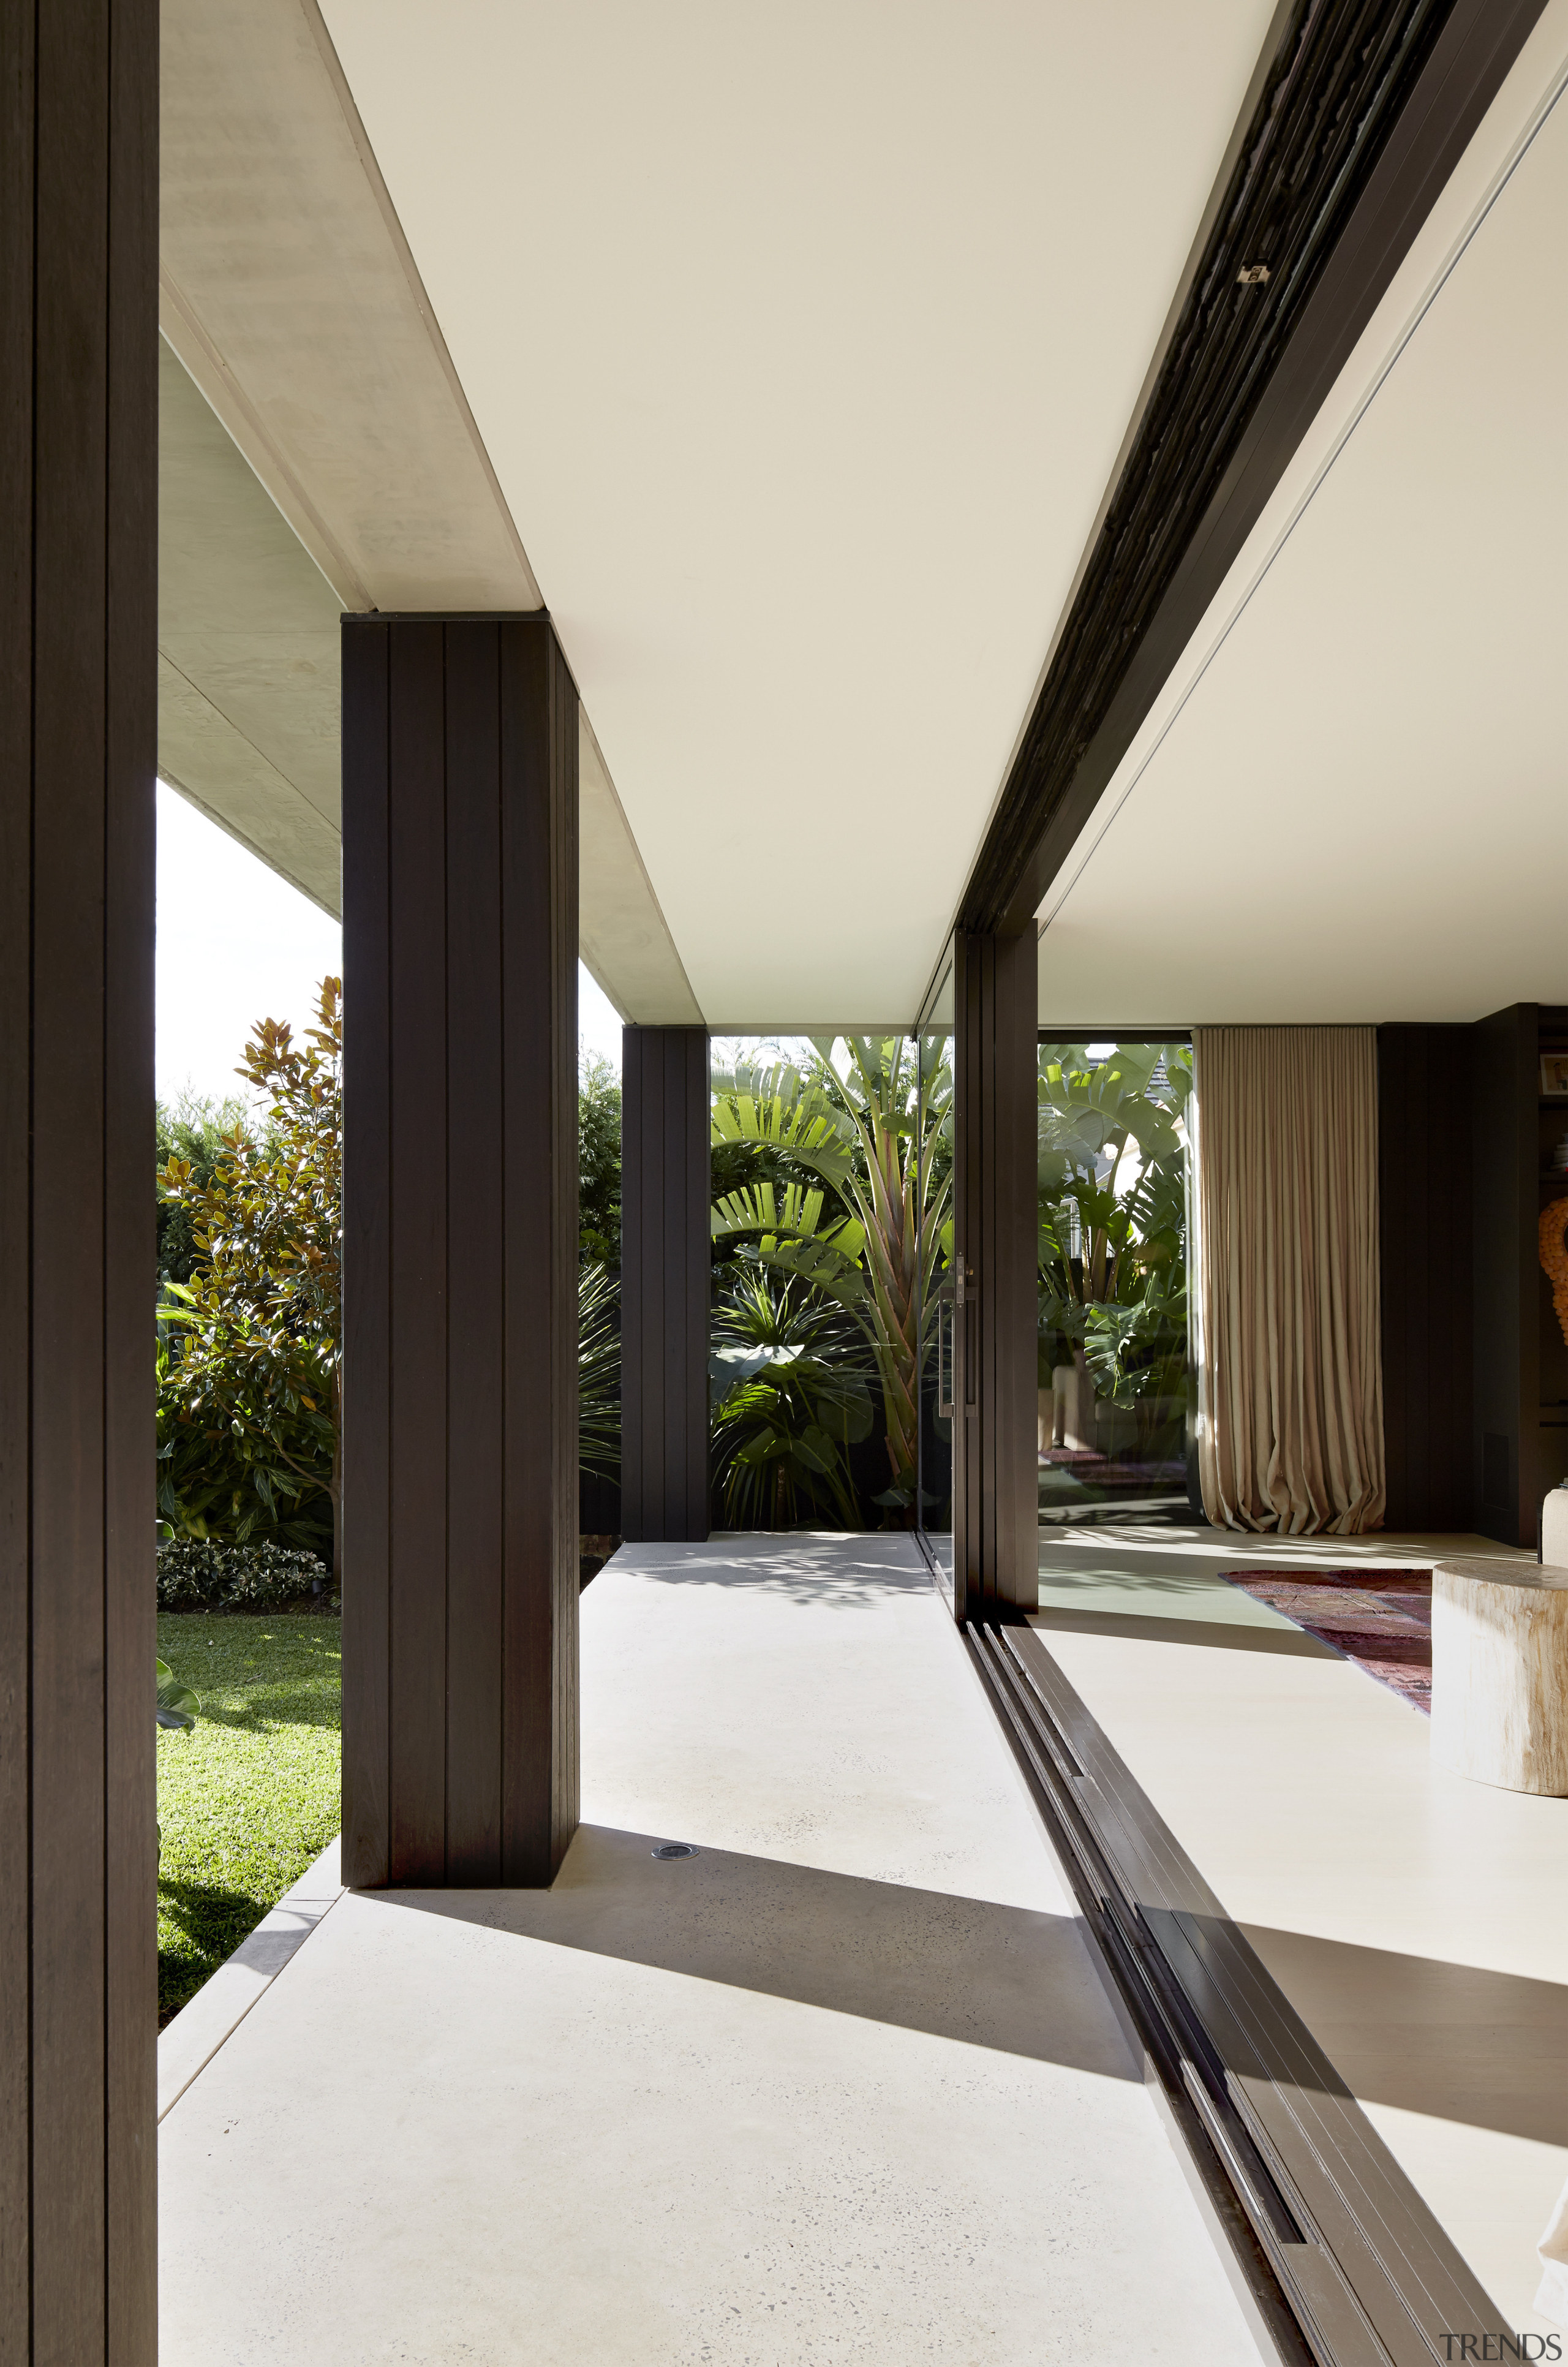 With sliders drawn back, the exterior and interior architecture, daylighting, estate, house, interior design, property, real estate, window, white, black